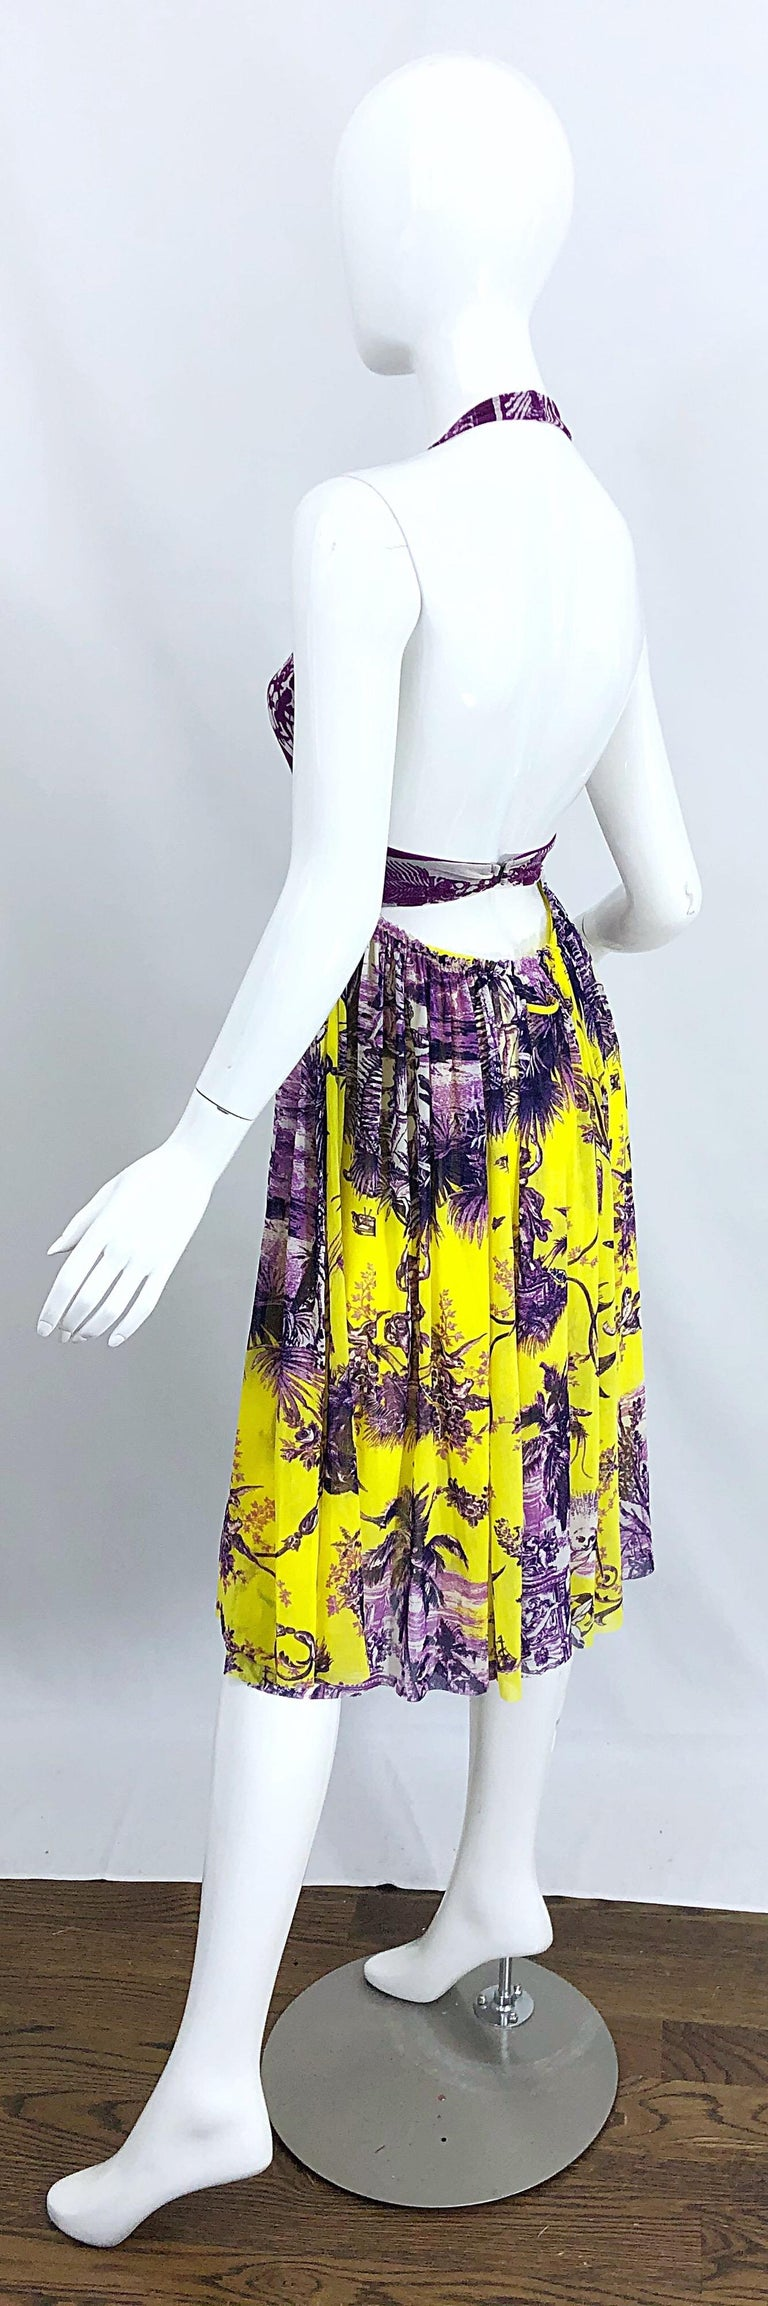 1990s Jean Paul Gaultier Mythical Print Yellow and Purple Vintage Halter Dress For Sale 8